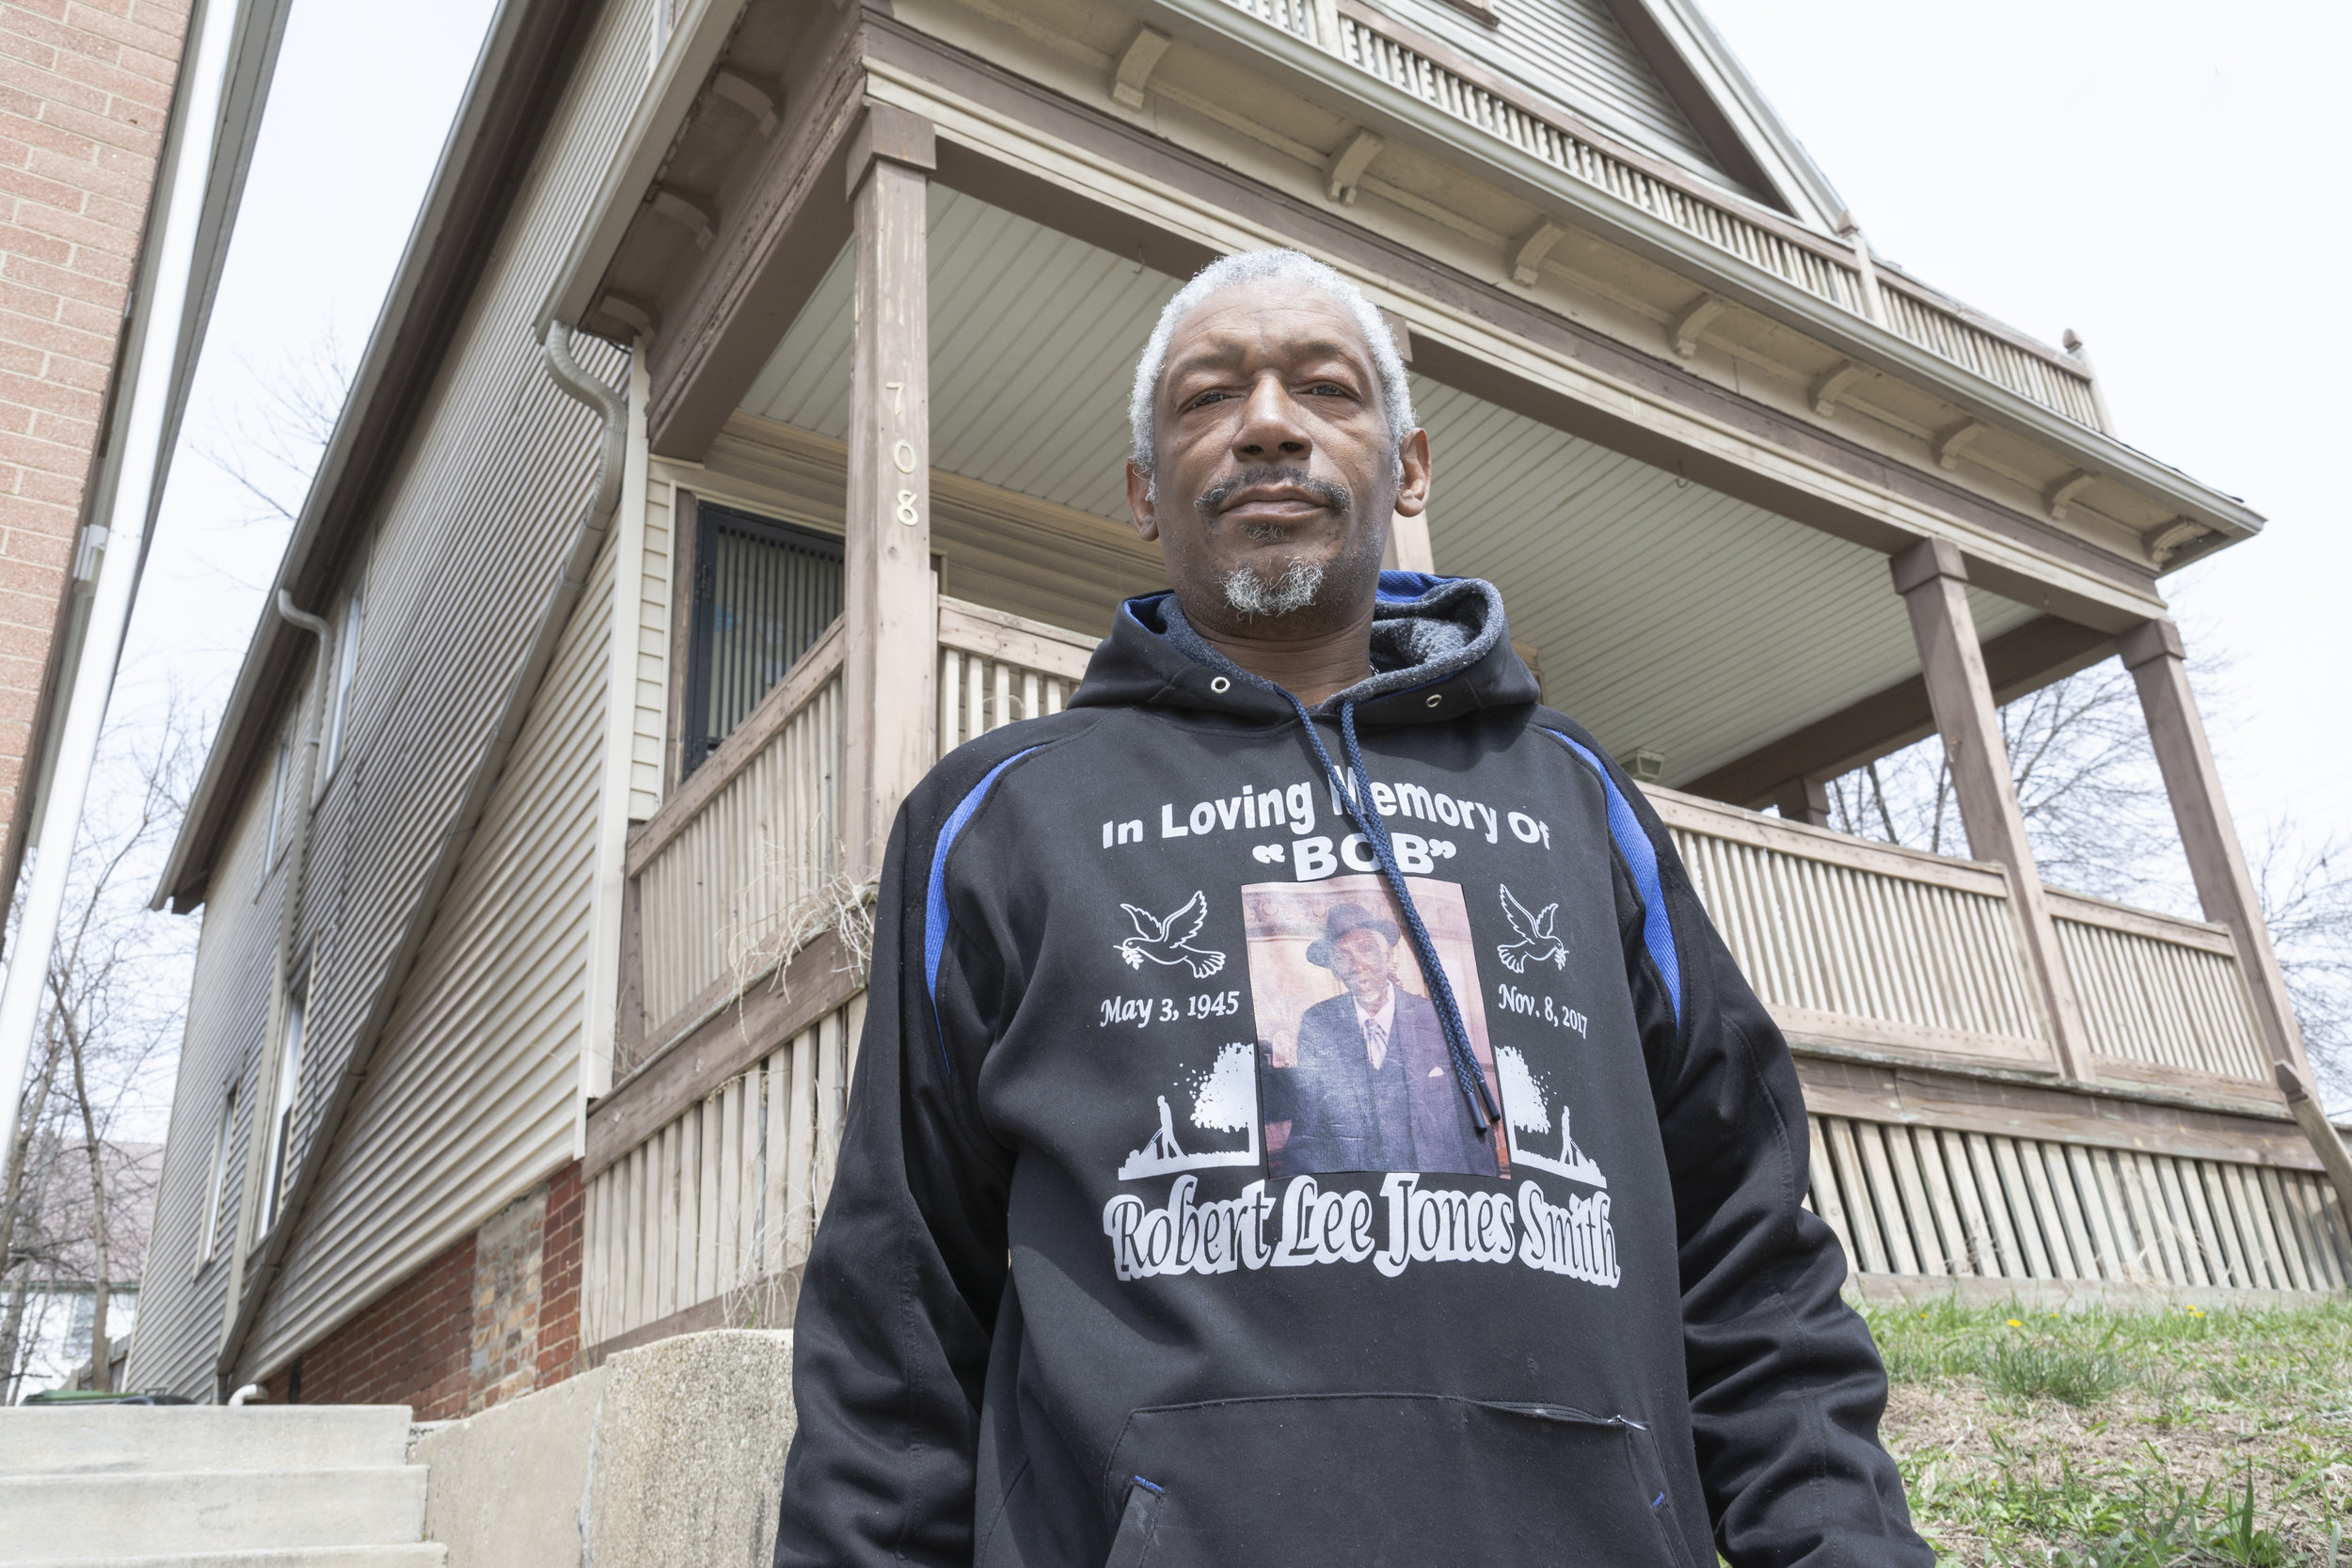 Reggie Jones Smith III told me that his dad and grandpa grew up in Memphis and they were bootleggers who eventually migrated to Milwaukee to continue in bootlegging. Reggie worked at Pabst Brewing until he was laid off years ago. Here in front of his home, Reggie wears a sweatshirt to pay tribute to his dad, Robert Lee.